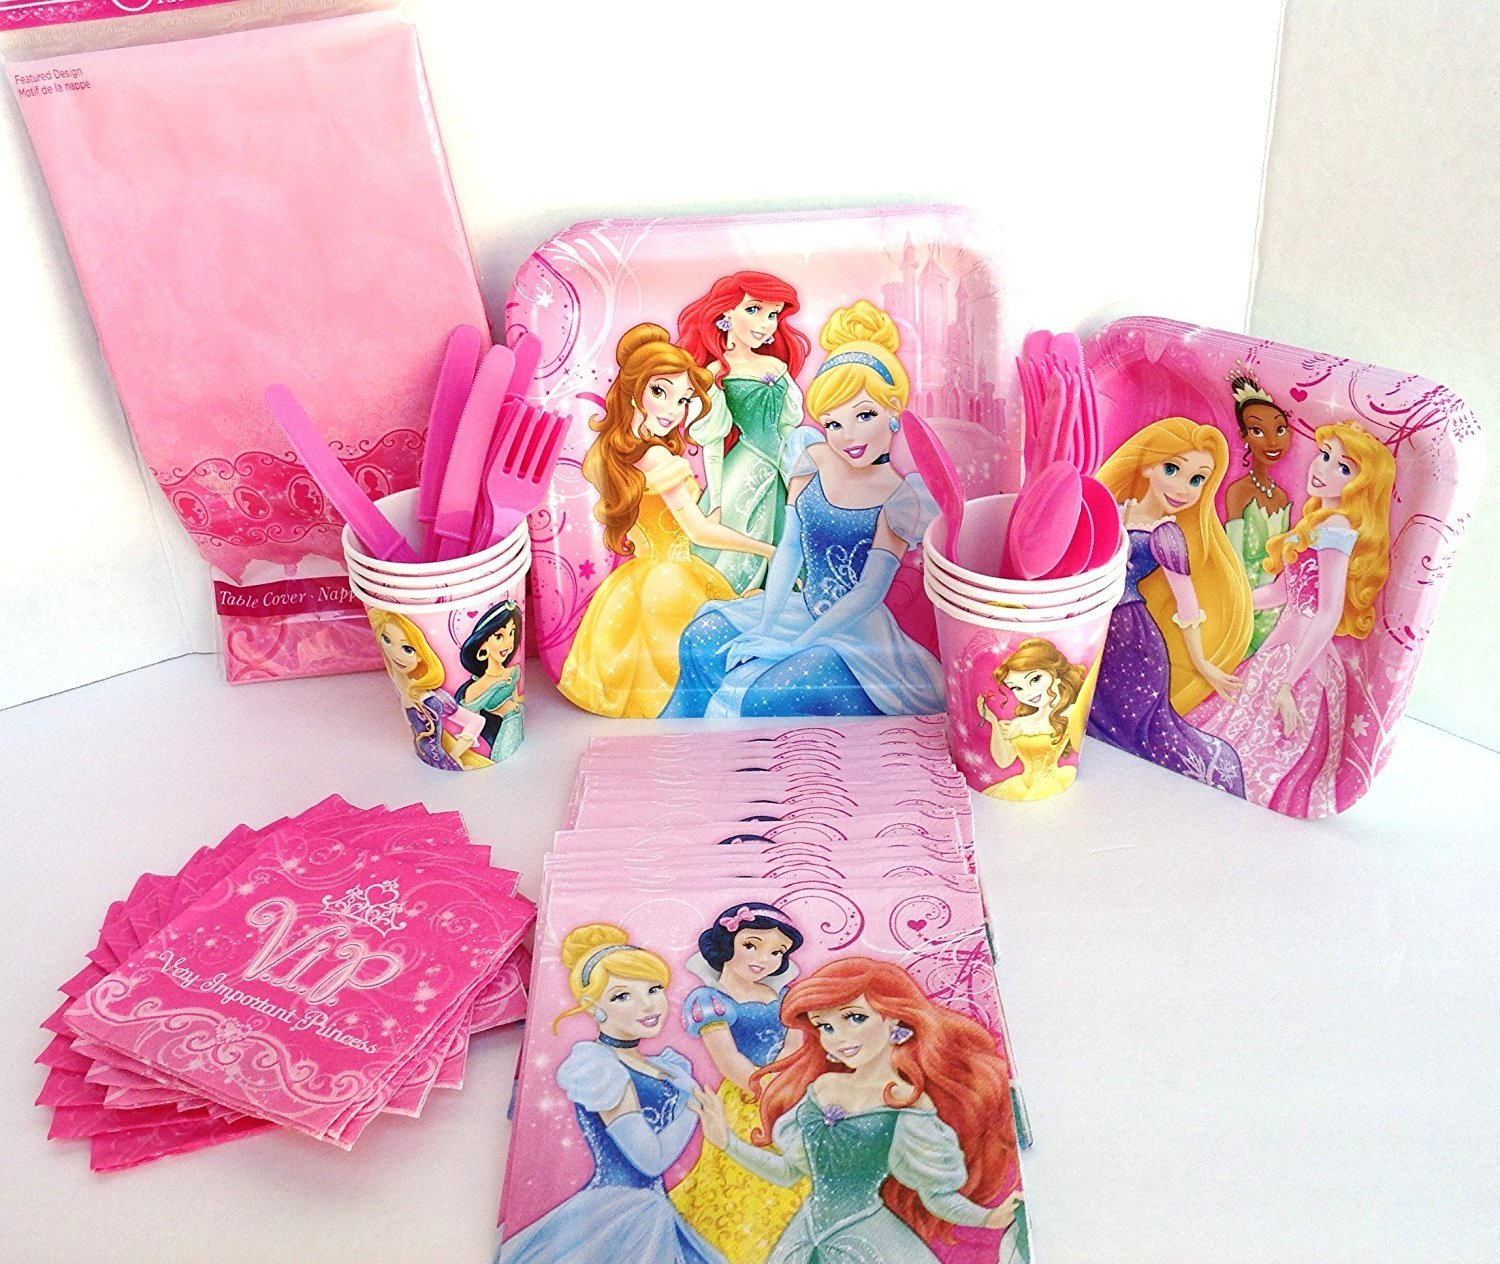 Disney Princess Deluxe Party Supply Pack- Dinner & Dessert Plates, Cups, Napkins, Table Cover, & Cutlery for 8 Guests